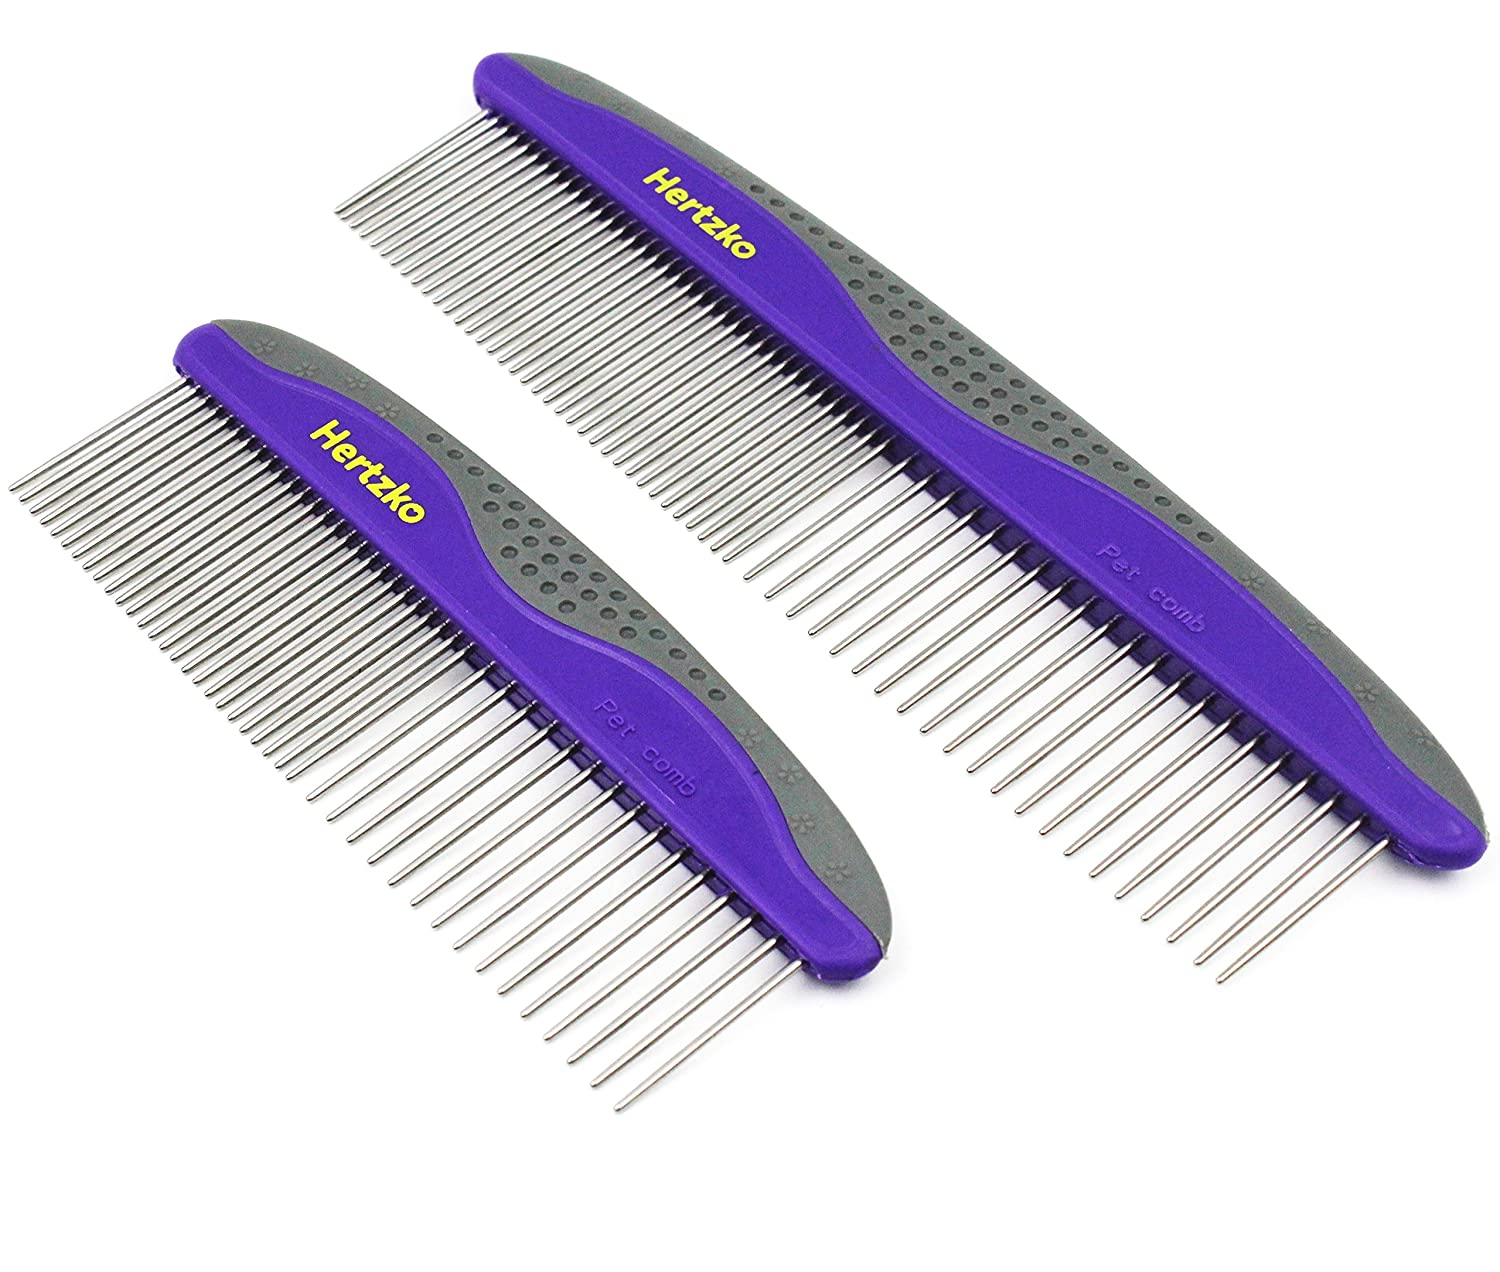 2 Pack Pet Combs by Hertzko – Small & Large Comb Included for Both Small & Large Areas -Removes Tangles, Knots, Loose Fur and Dirt. Ideal for Everyday Use for Dogs and Cats with Short or Long Hair